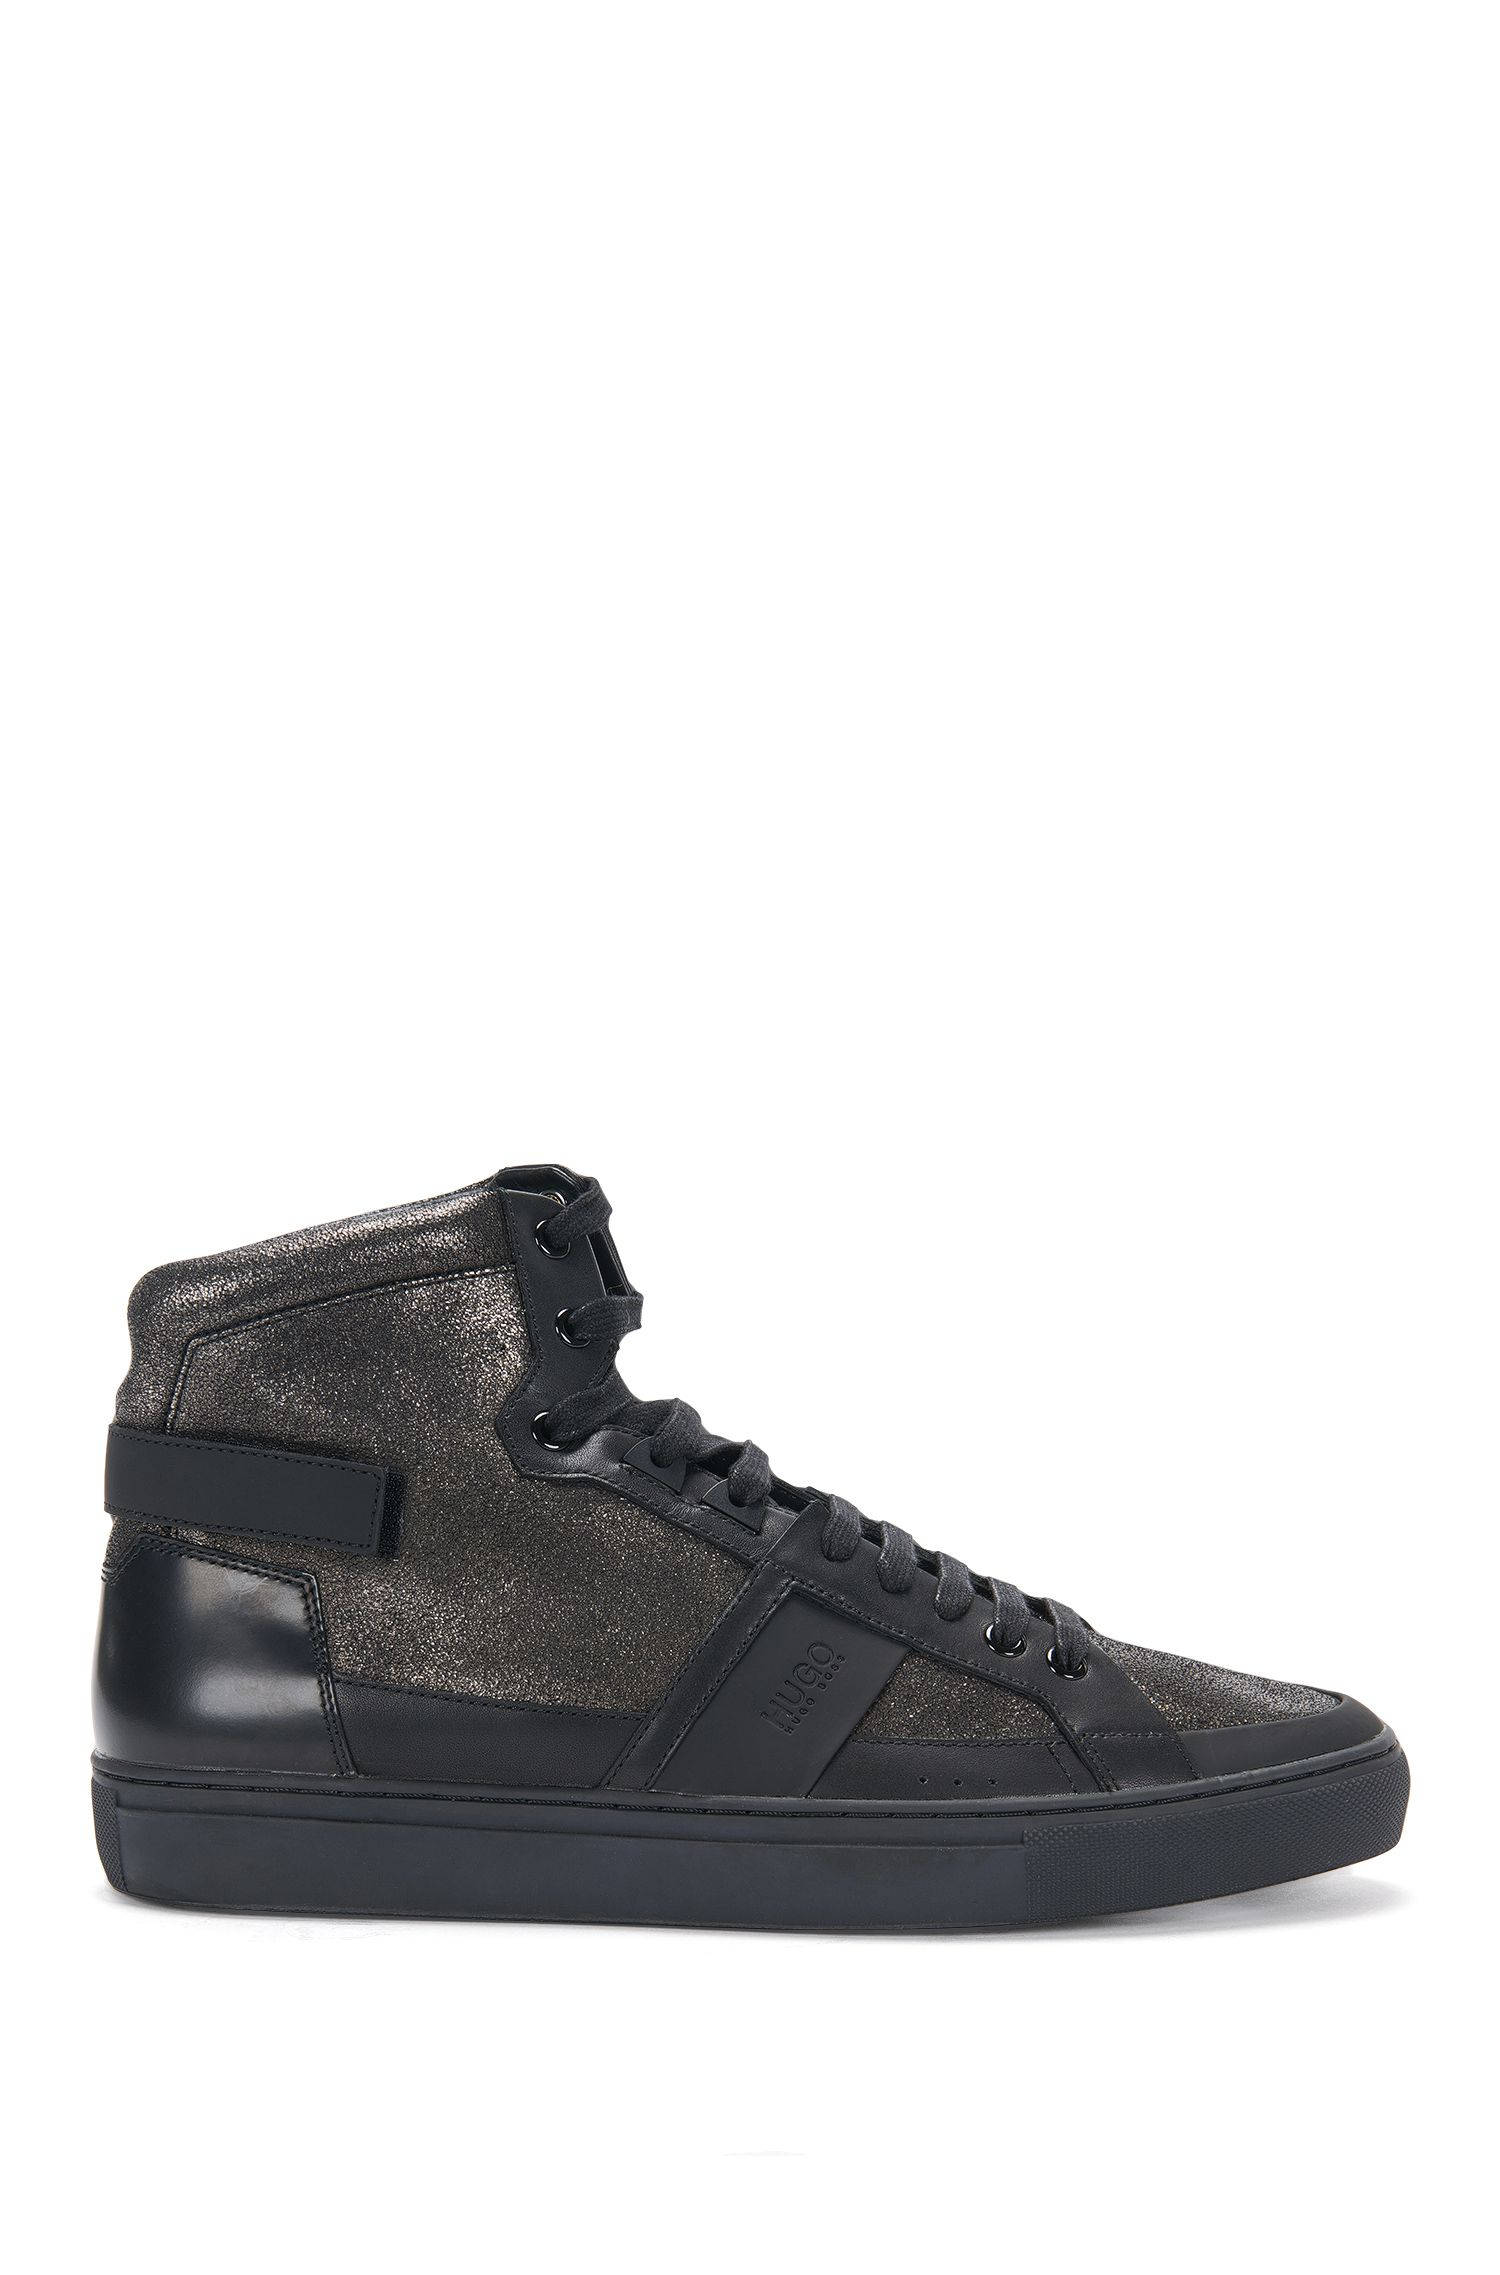 High-Top Sneakers aus Leder im Metallic-Look: 'Futurism_Hito_mxgl'